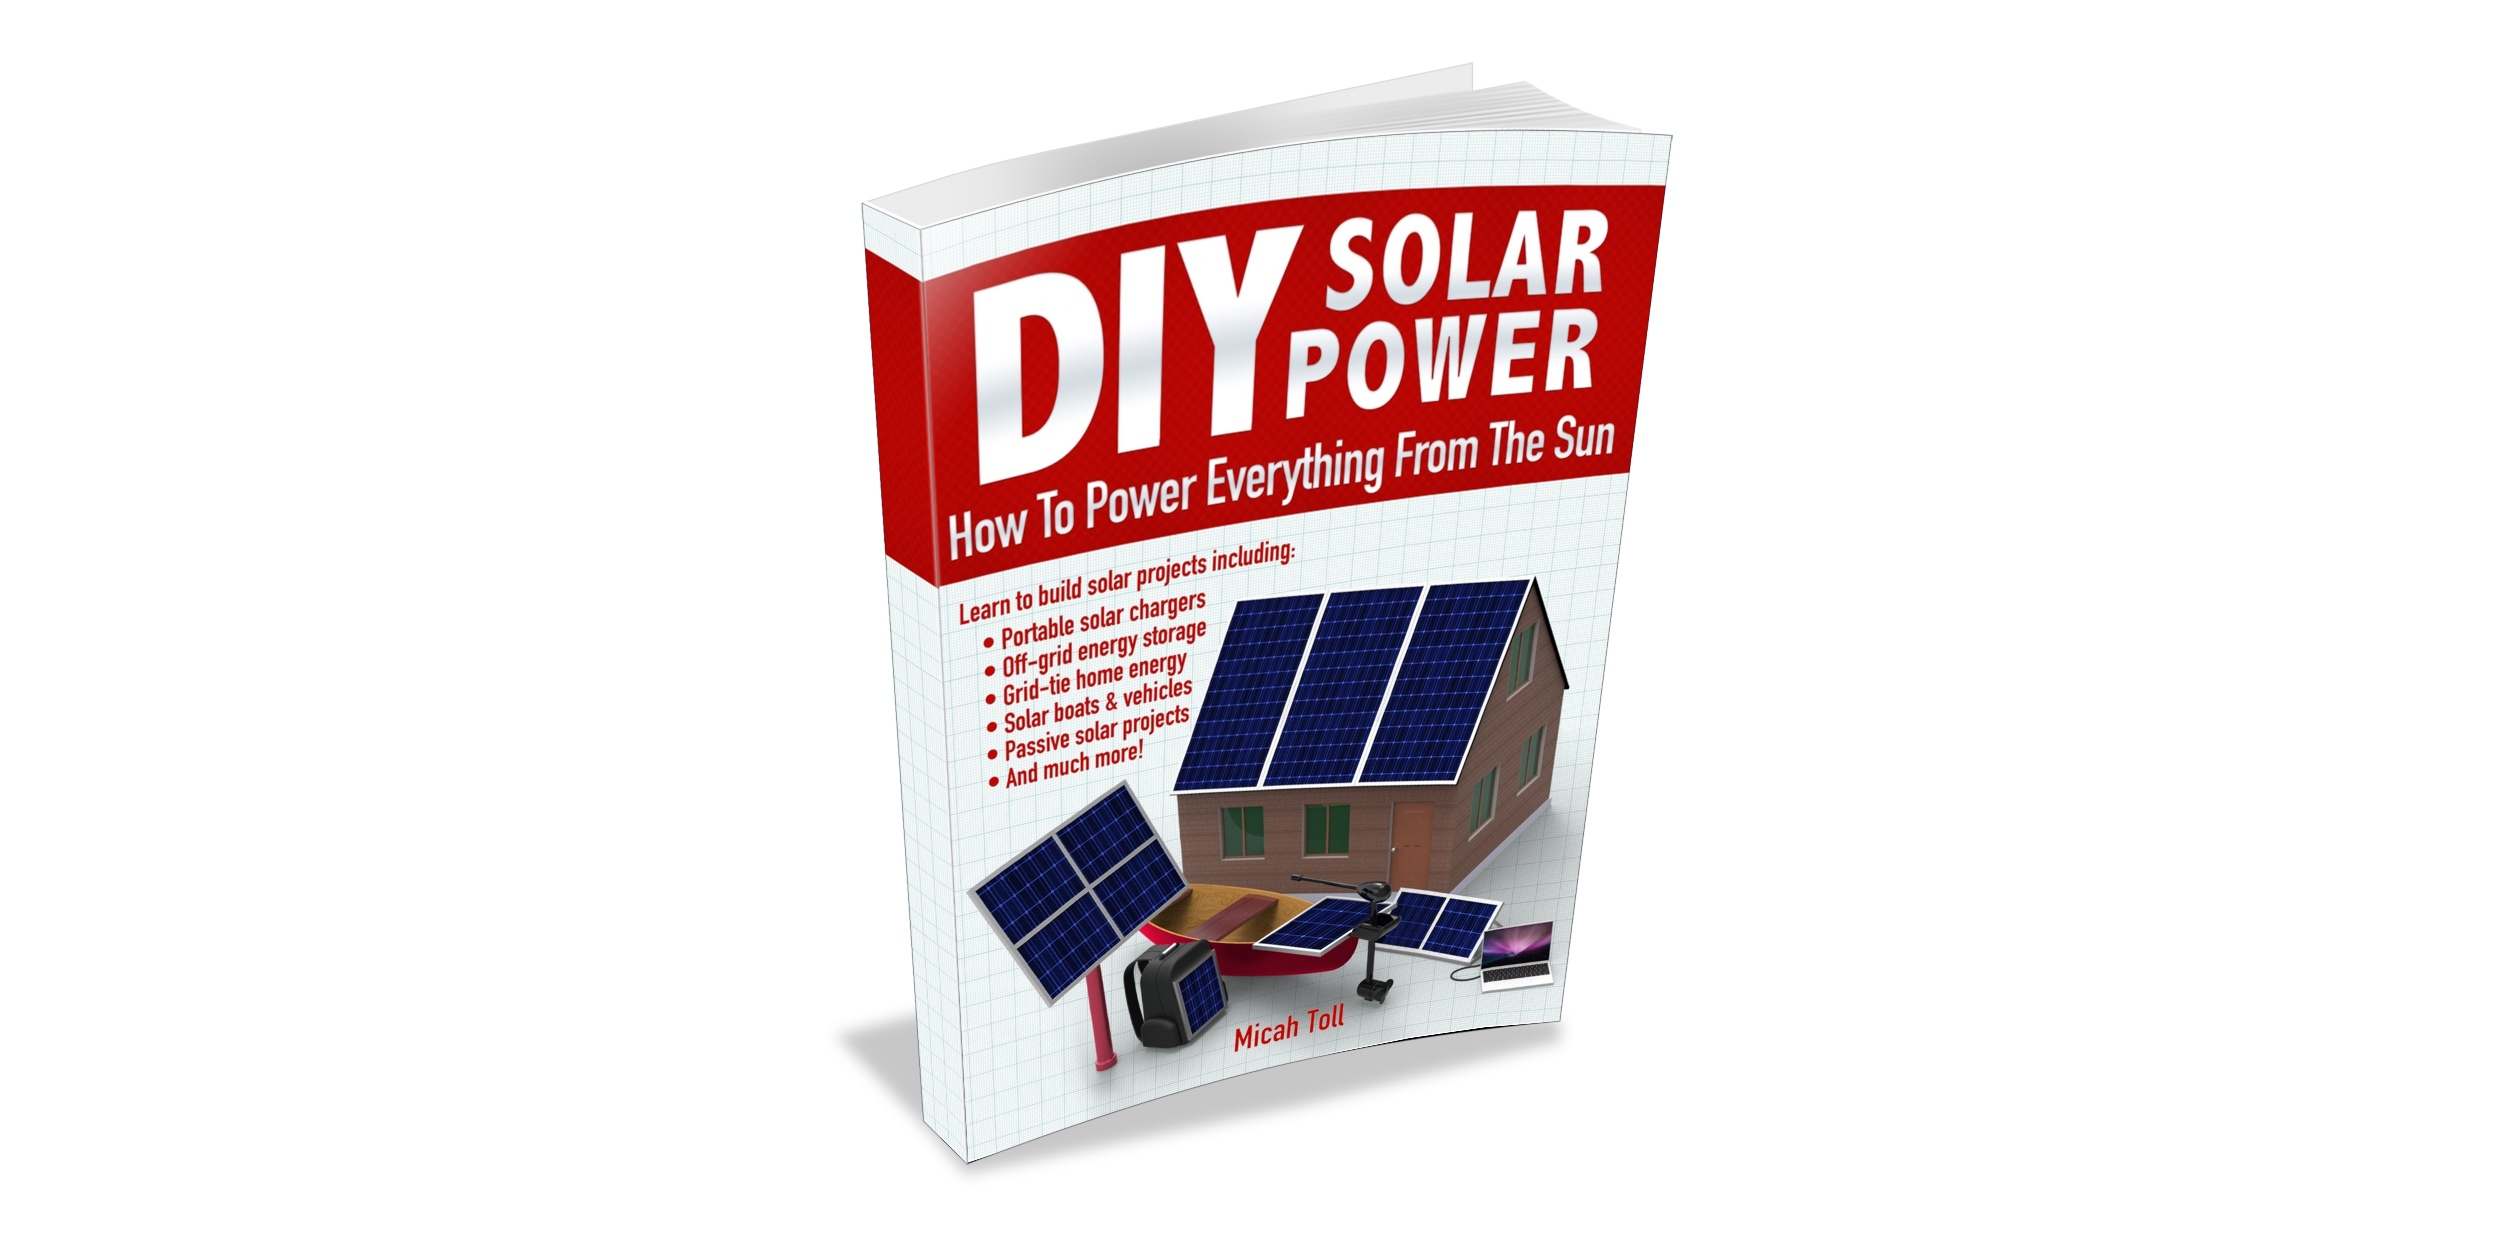 How-to: New book 'DIY Solar Power' puts solar energy in your hands [free chapter]